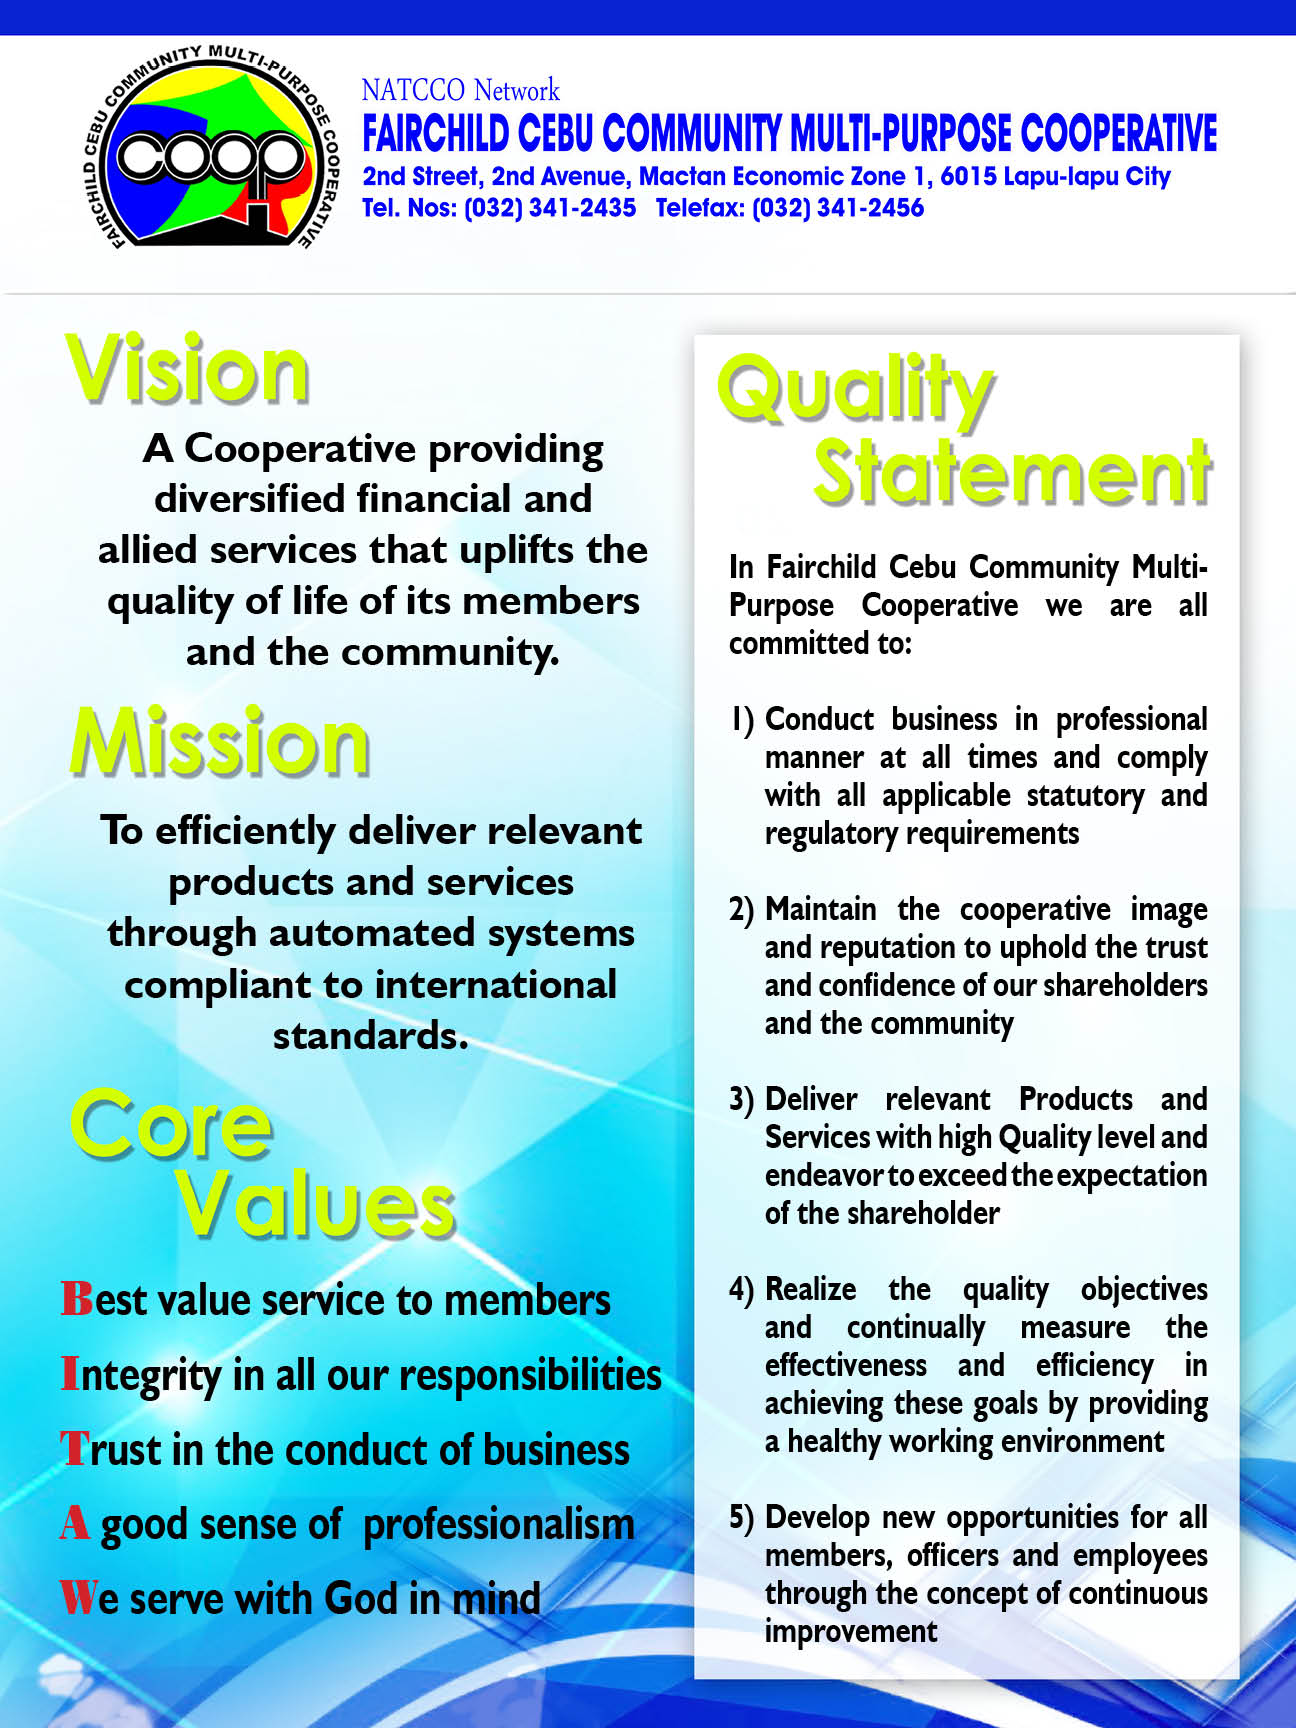 FCCMPC's Vision, Mission, Core Values & Policy Statement!